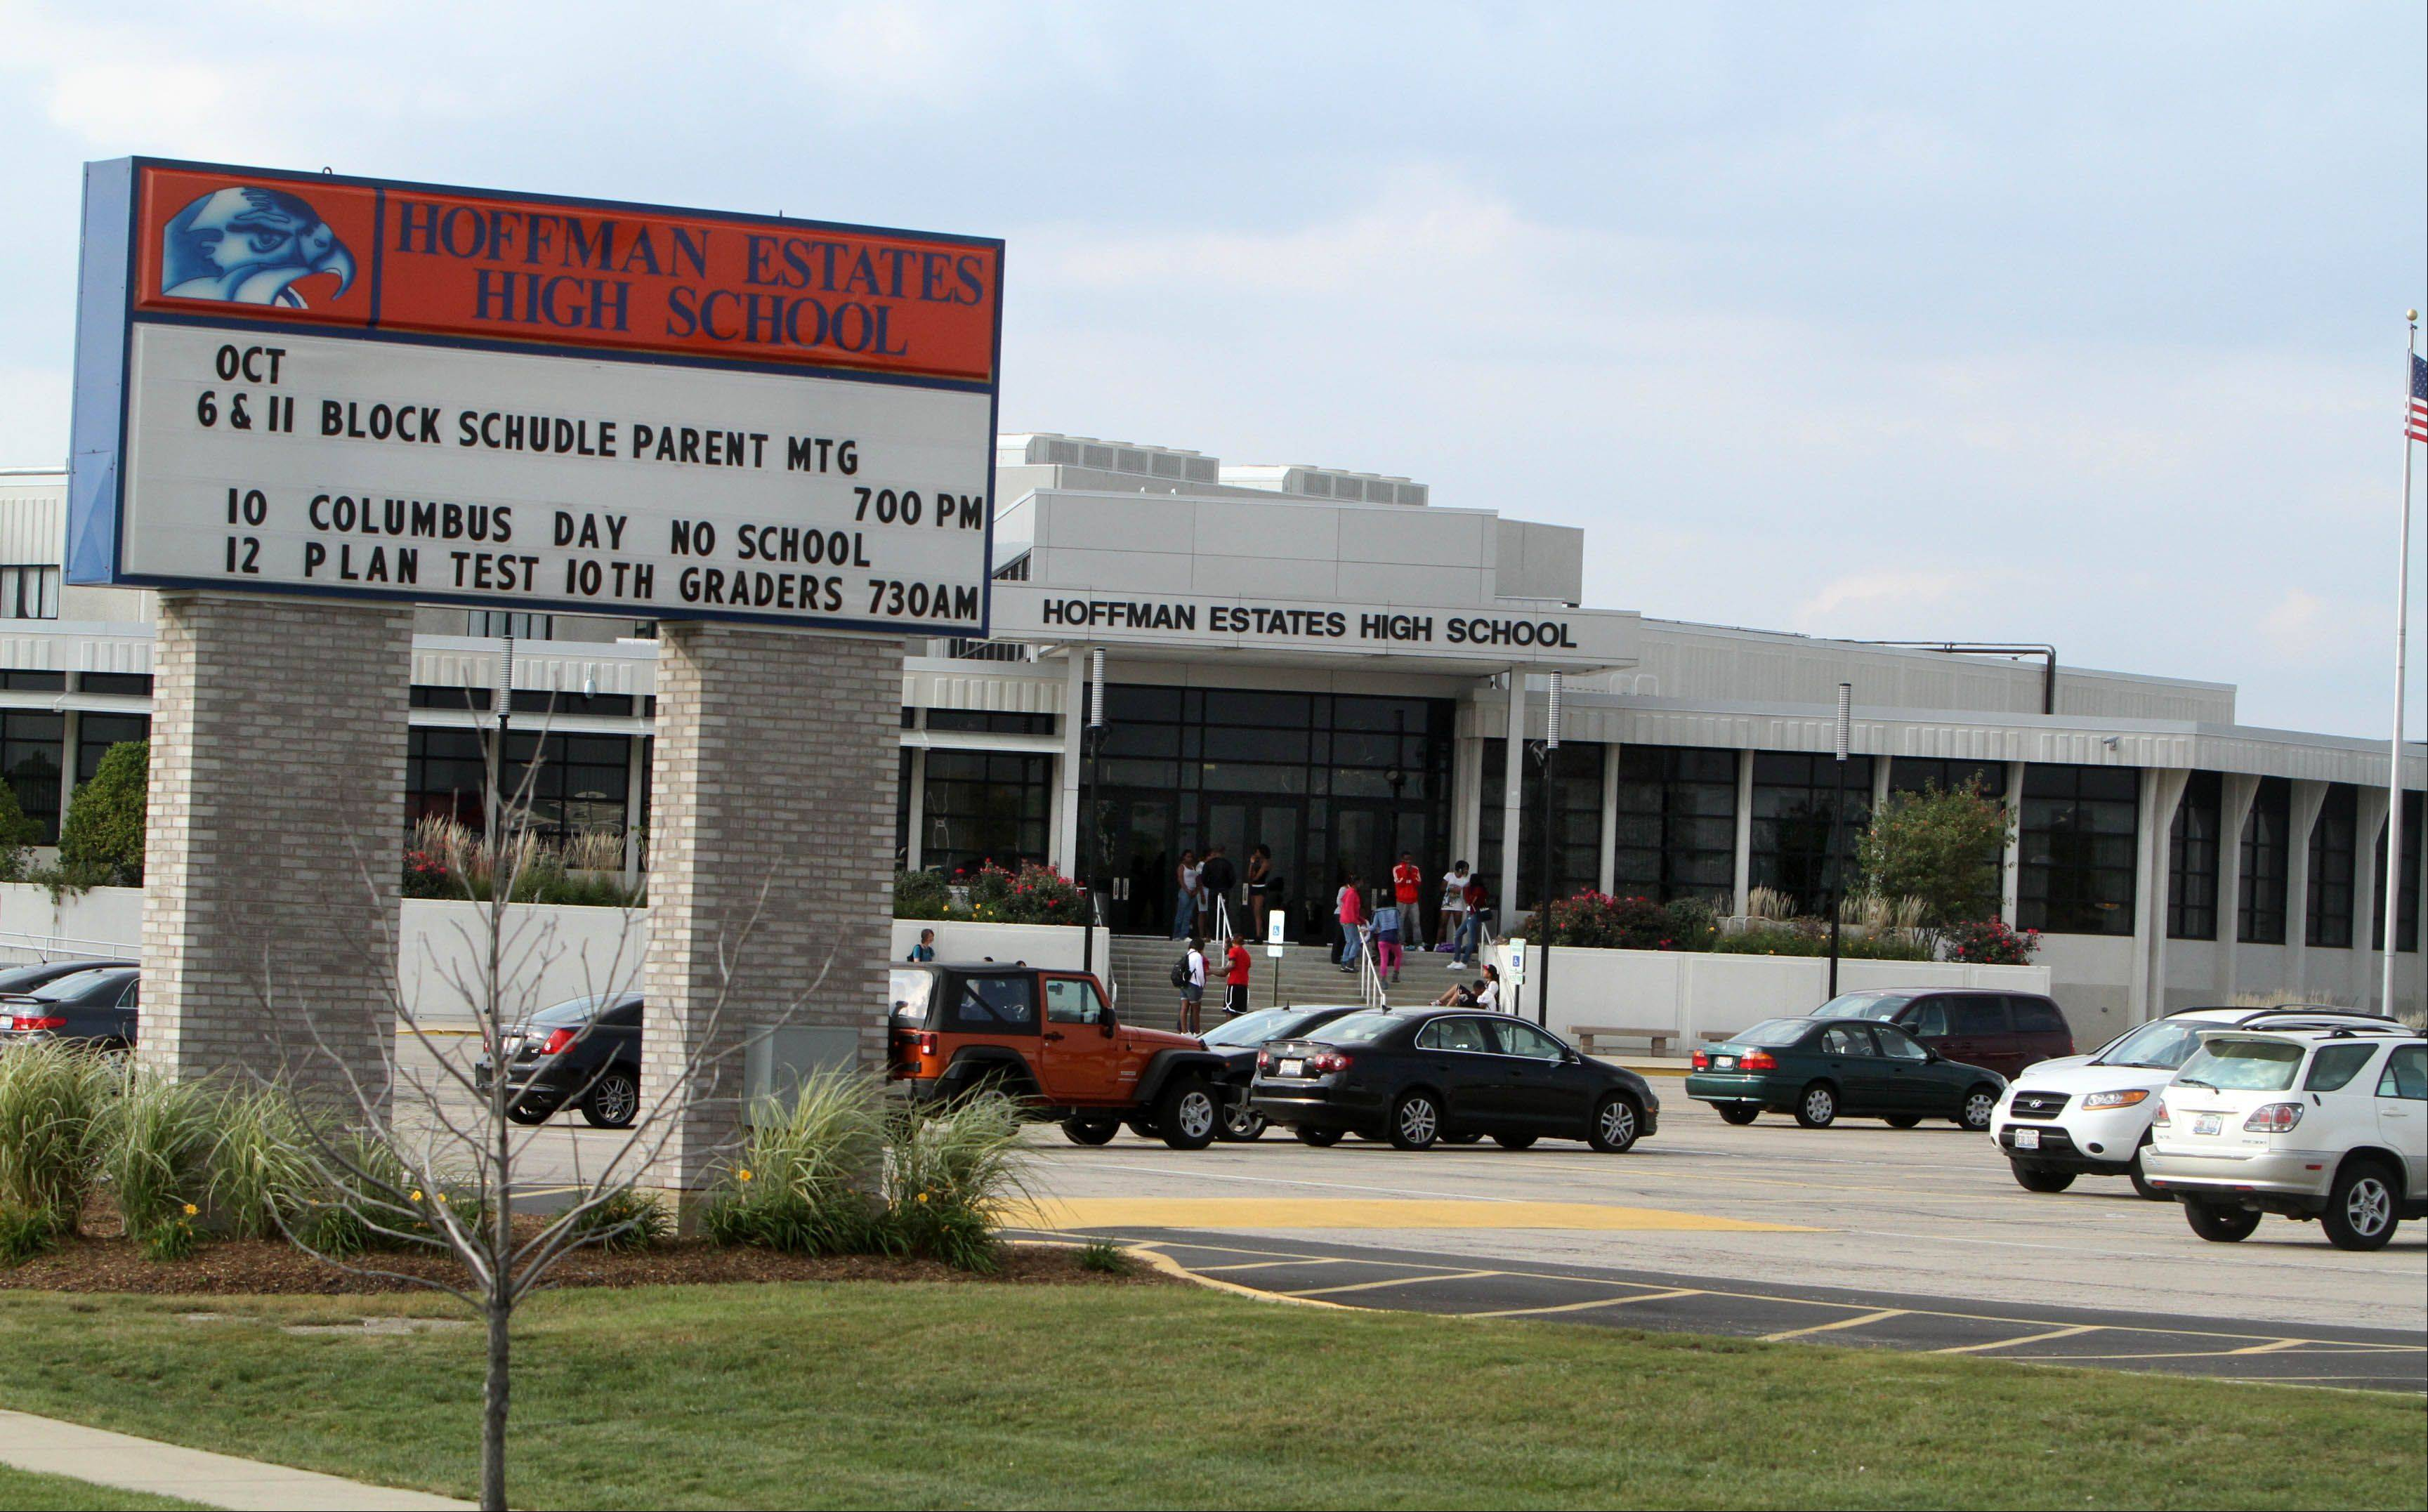 Criminal charges are unlikely against members of the Hoffman Estates High School boys' varsity basketball team accused of hazing fellow students earlier this year, according to police who said they've wrapped up their investigation into the allegations.